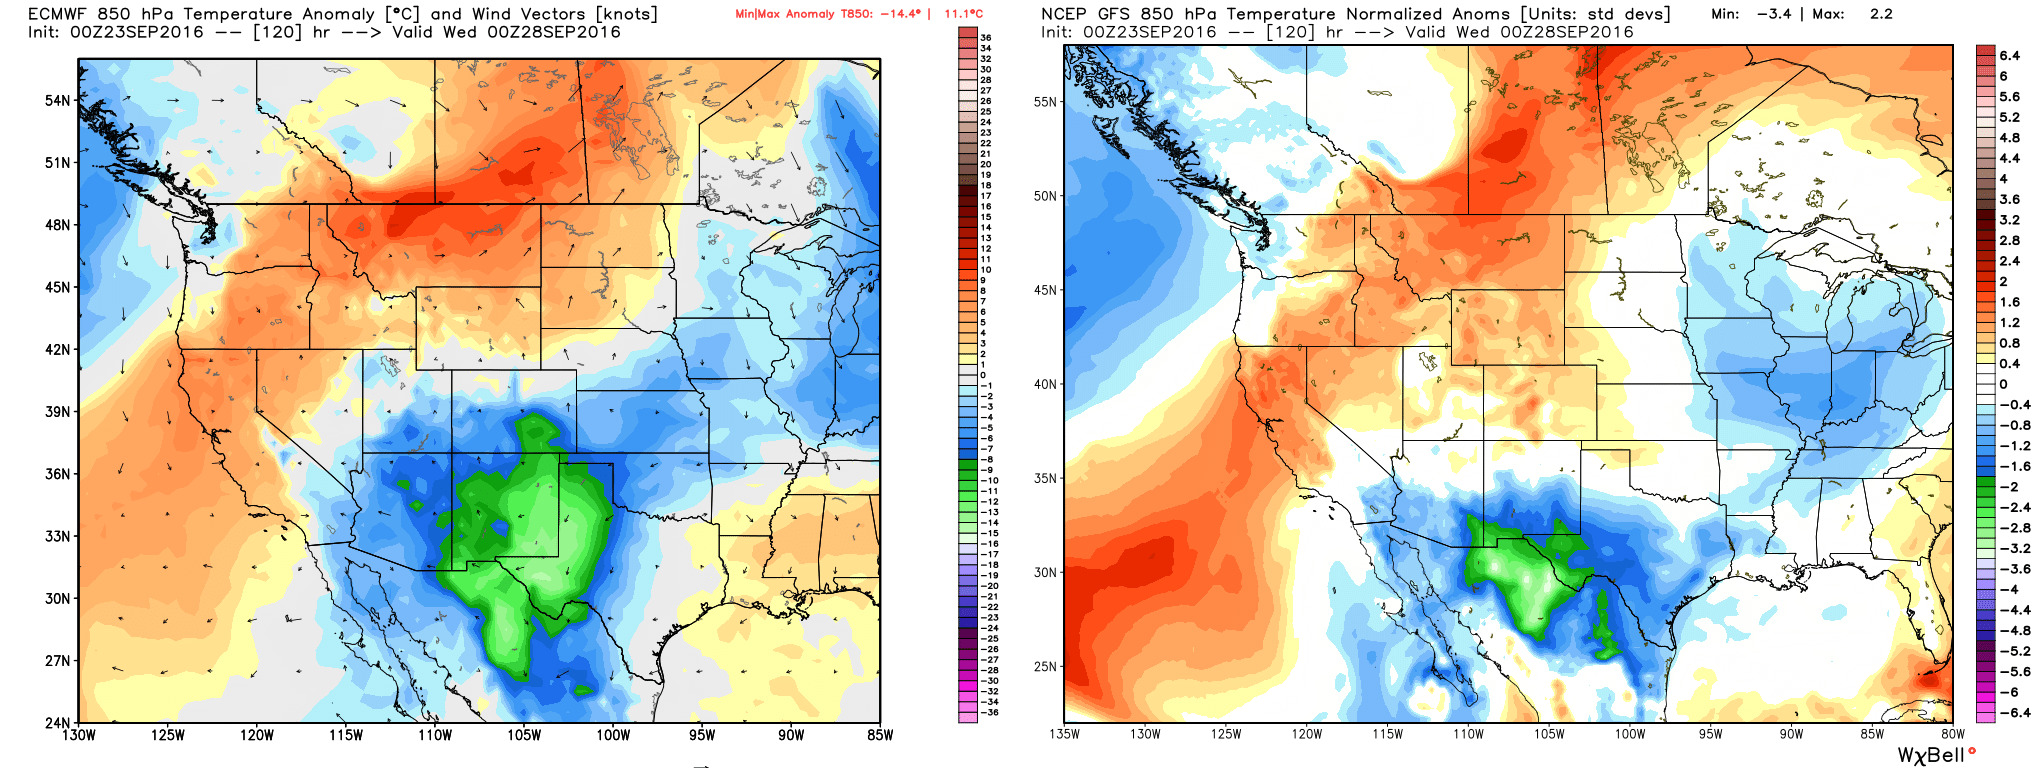 The European model (left) and GFS model (right) show distinct temperature differences in SE Texas Tuesday evening. The Euro keeps us near to above normal, while the GFS pushes the front through. (Weather Bell)